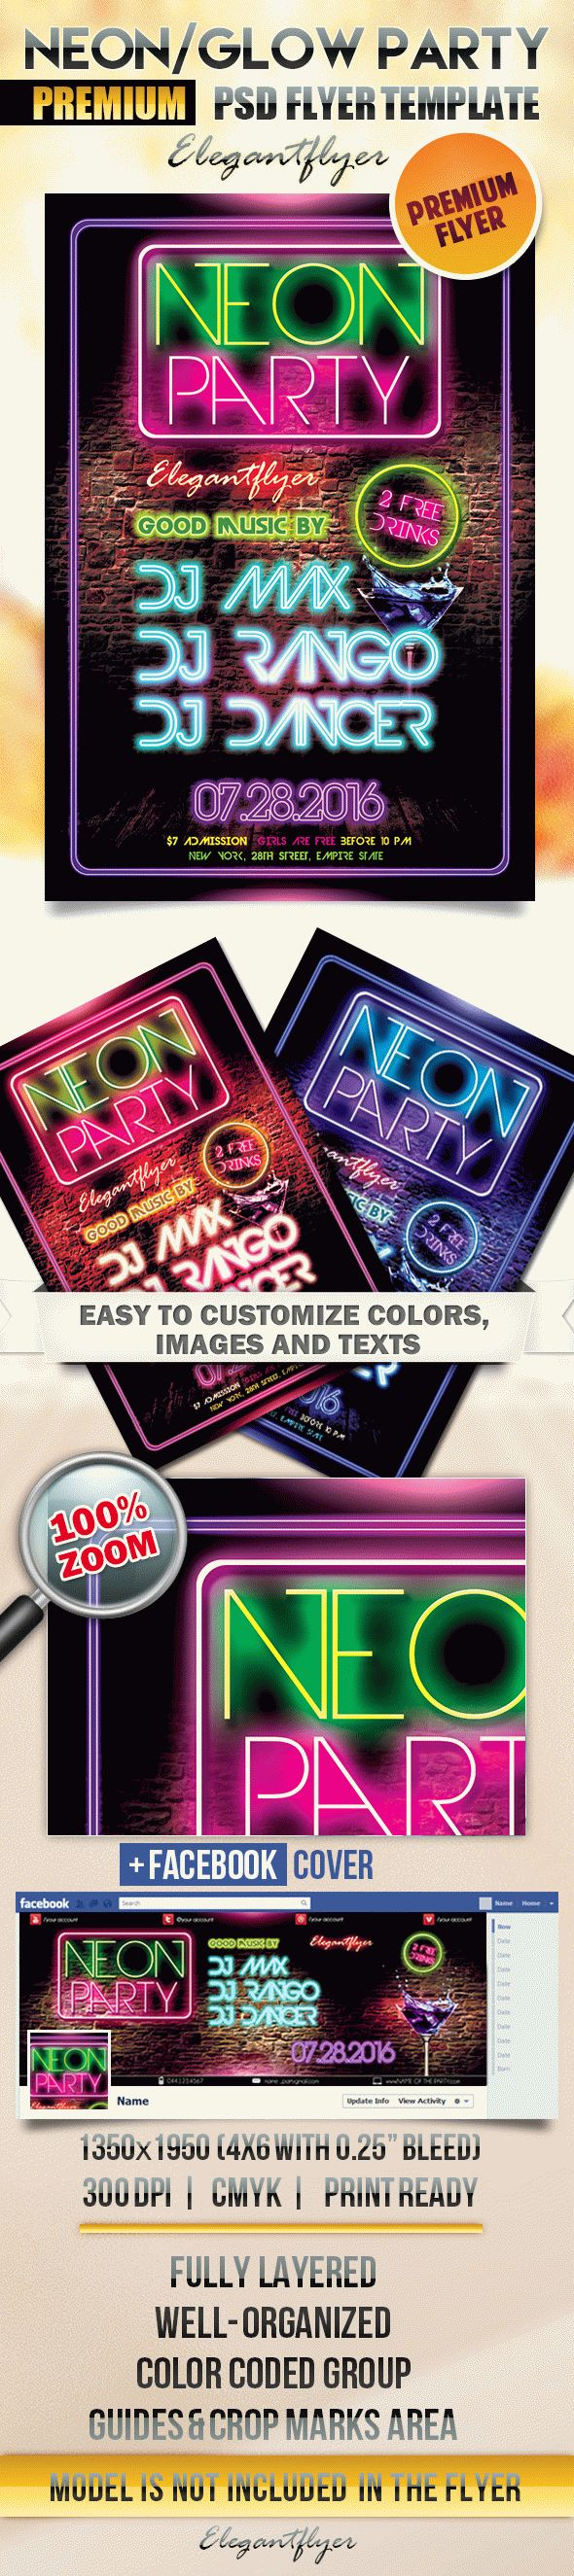 Neon/Glow Party Flyer PSD Template + Facebook Cover